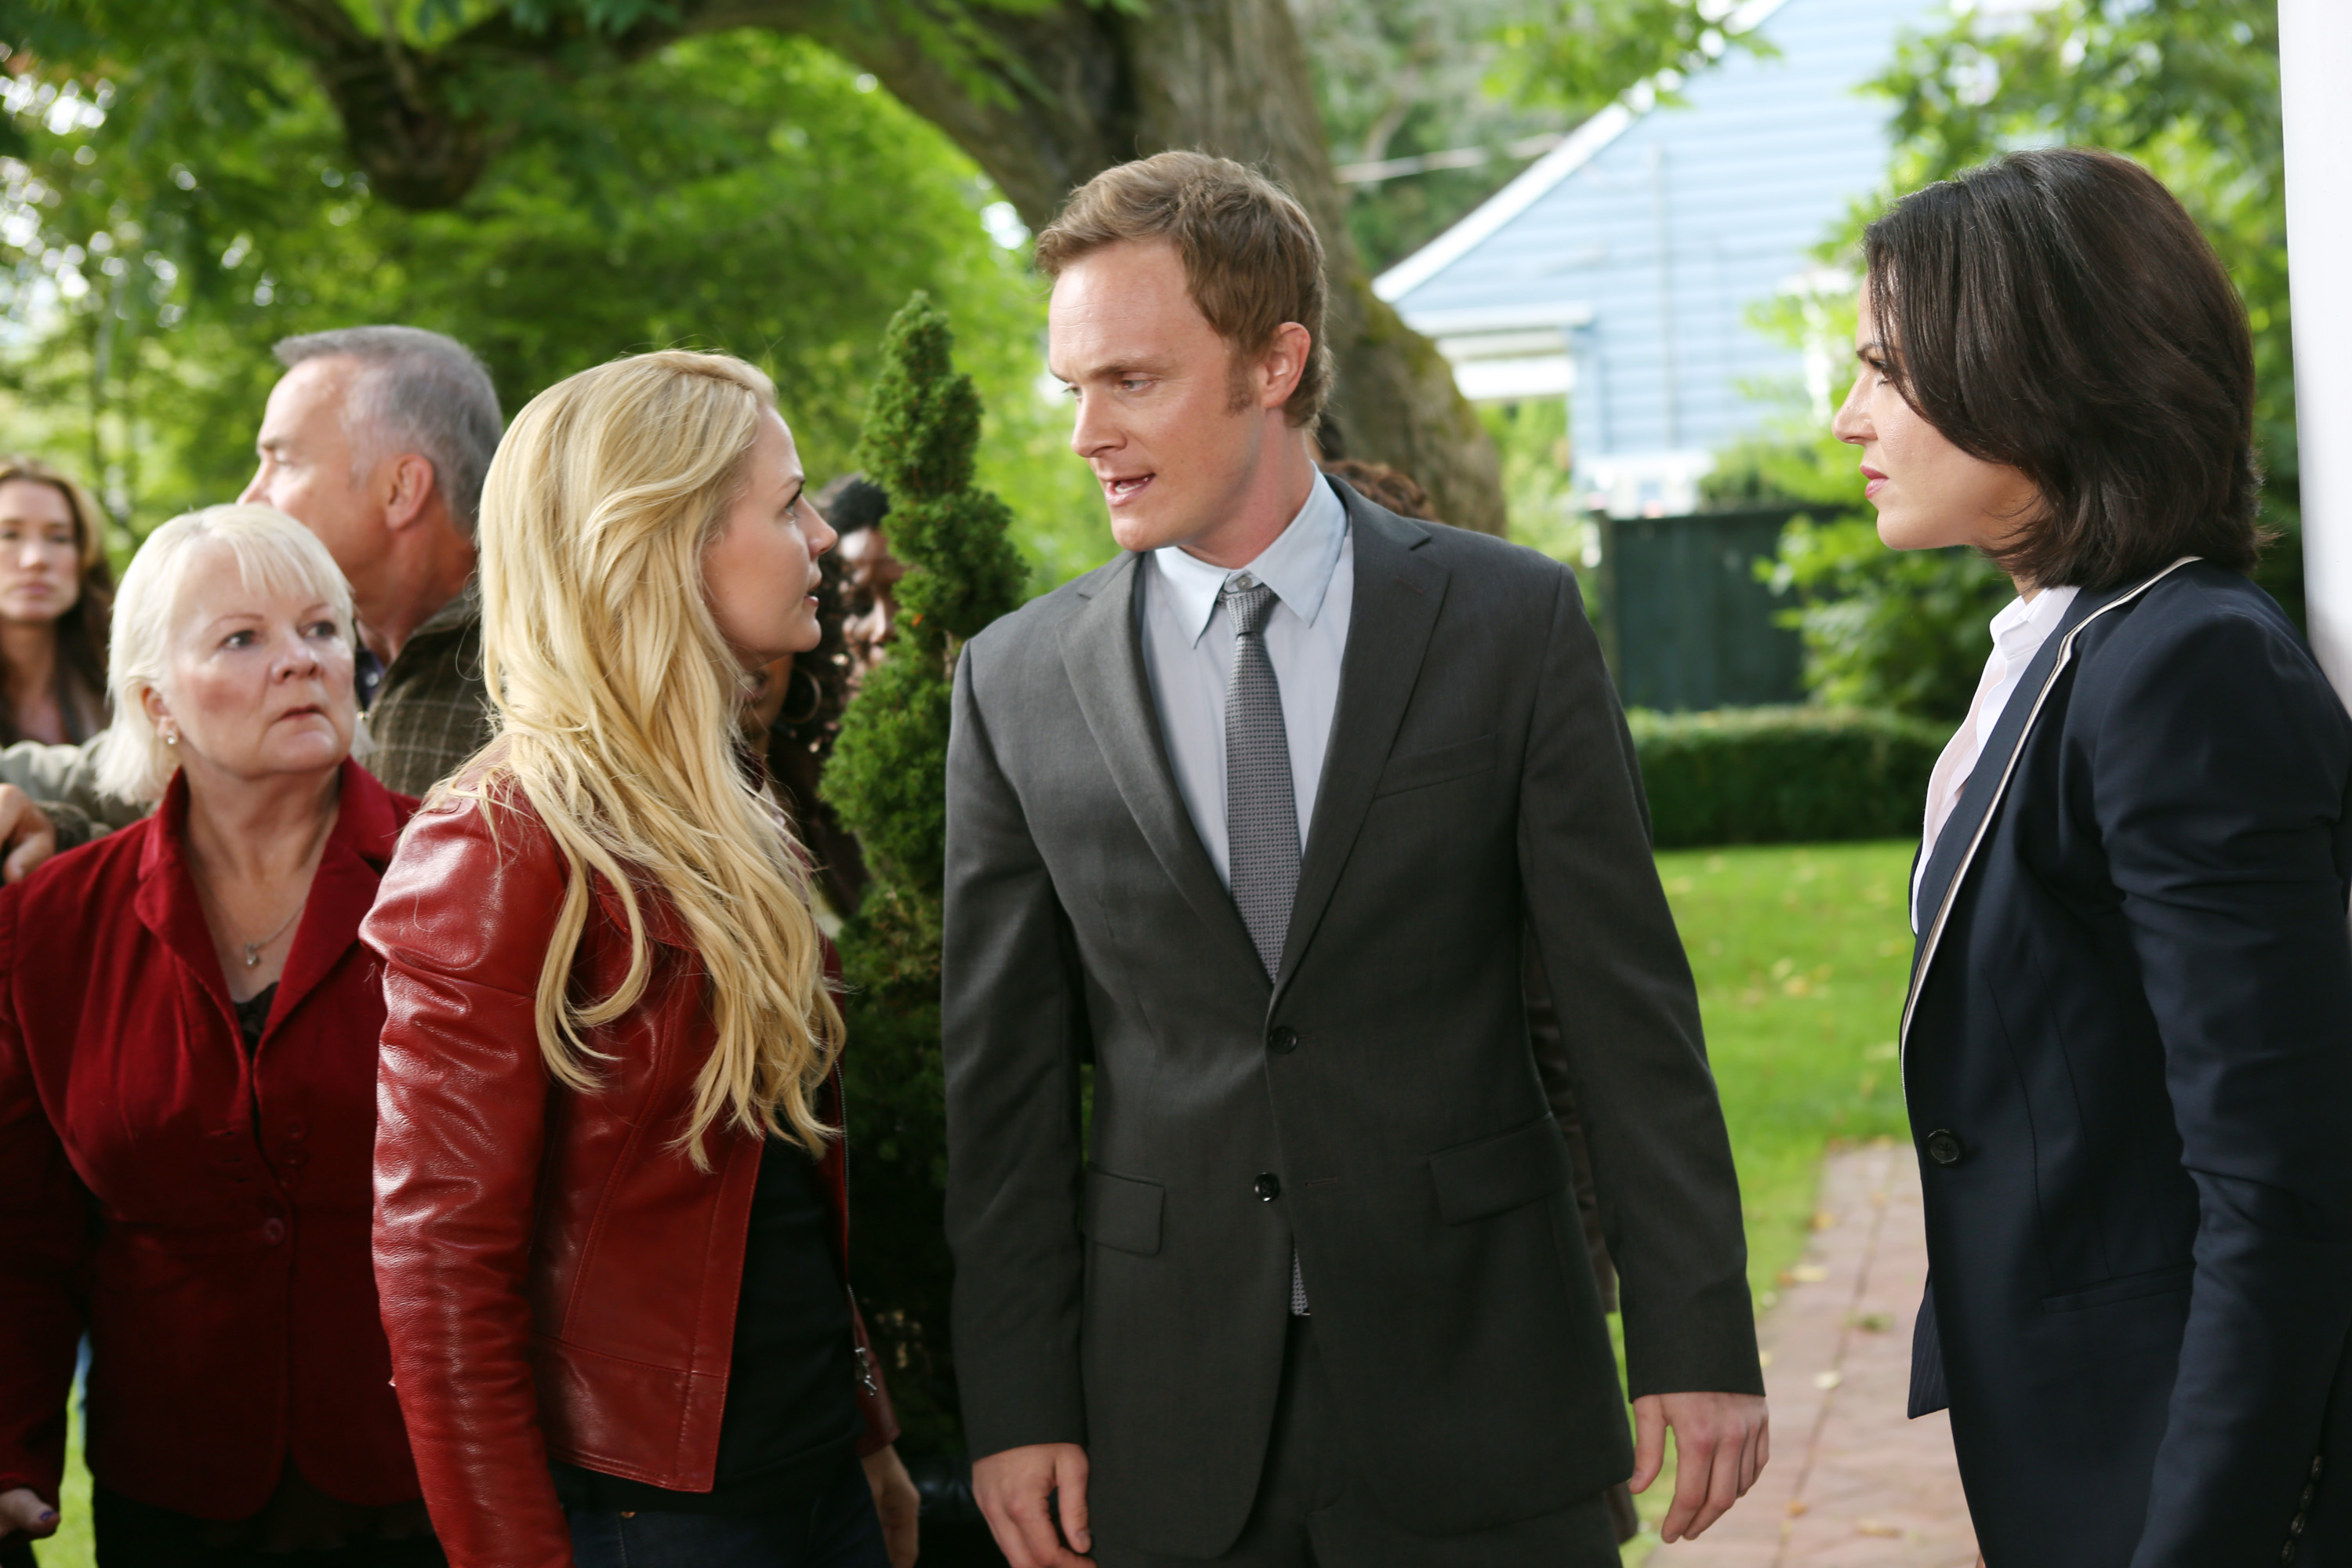 """ONCE UPON A TIME - In the premiere episode, """"Broken,"""" reality and myth begin to merge as the fairytale characters awaken from Evil Queen Regina's broken curse and remember who they were. But to their dismay, they aren't transported back to fairytale land. To make matters worse, Rumplestiltskin - aka Mr. Gold - in an effort to gain the upper hand in his power struggle with Regina, has introduced magic into the town. In fairytales magic has its place, but in our world it can have unfathomable consequences. Meanwhile, back in the fairytale land, Prince Phillip awakens his sleeping beauty, Aurora (Sarah Bolger, """"The Tudors""""), but discovers that he and his traveling companion, Mulan (Jamie Chung, """"Sucker Punch,"""" """"The Hangover Part II""""), will soon have to face a deadly foe, on the Season Premiere of """"Once Upon a Time,"""" SUNDAY, SEPTEMBER 30 (8:00-9:00 p.m., ET) on the ABC Television Network. (ABC/JACK ROWAND) JENNIFER MORRISON, DAVID ANDERS, LANA PARRILLA"""